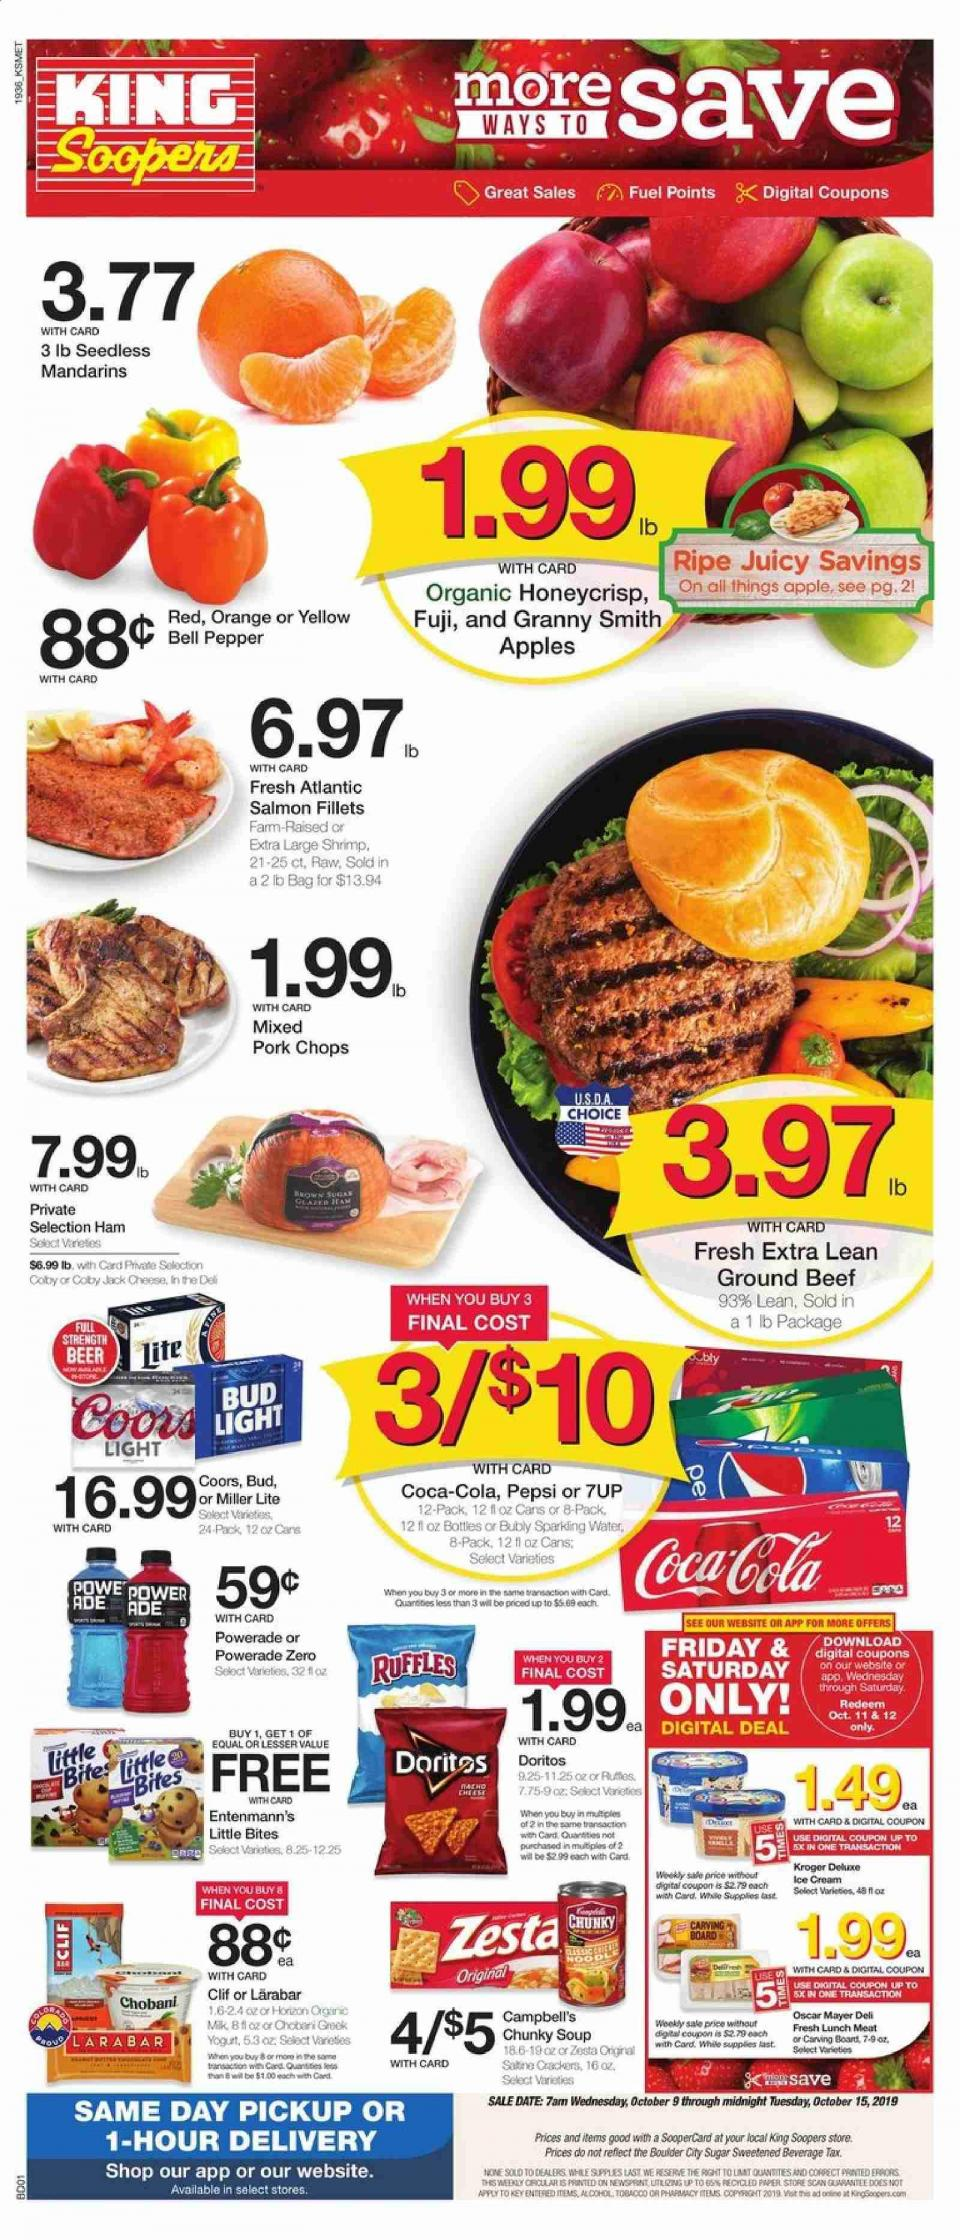 king soopers ad more ways to save from oct 9 to 15 2019